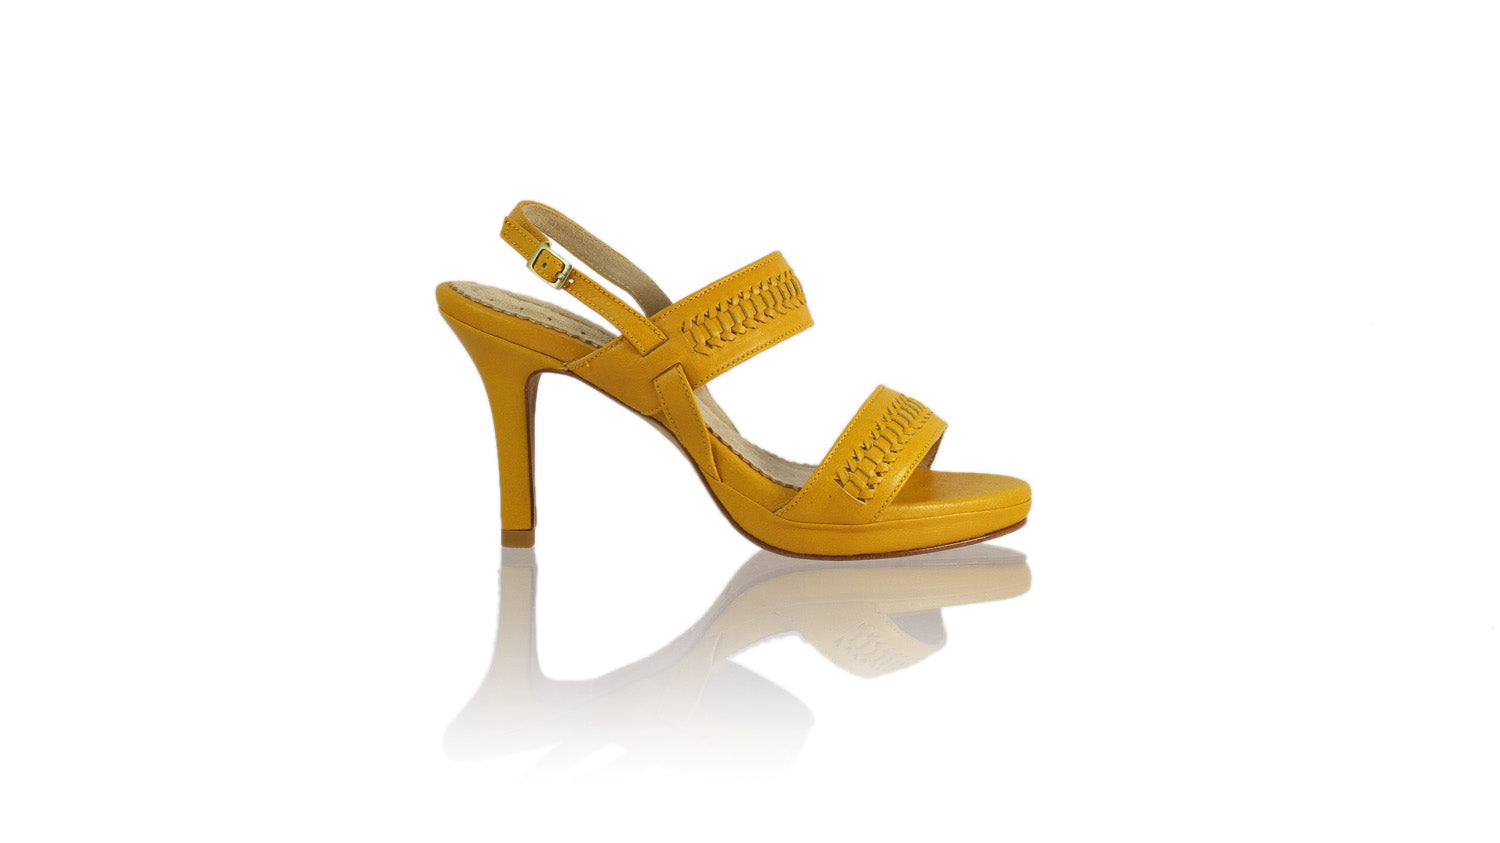 Leather-shoes-Sahara 90MM SH-01 PF - Yellow-sandals higheel-NILUH DJELANTIK-NILUH DJELANTIK